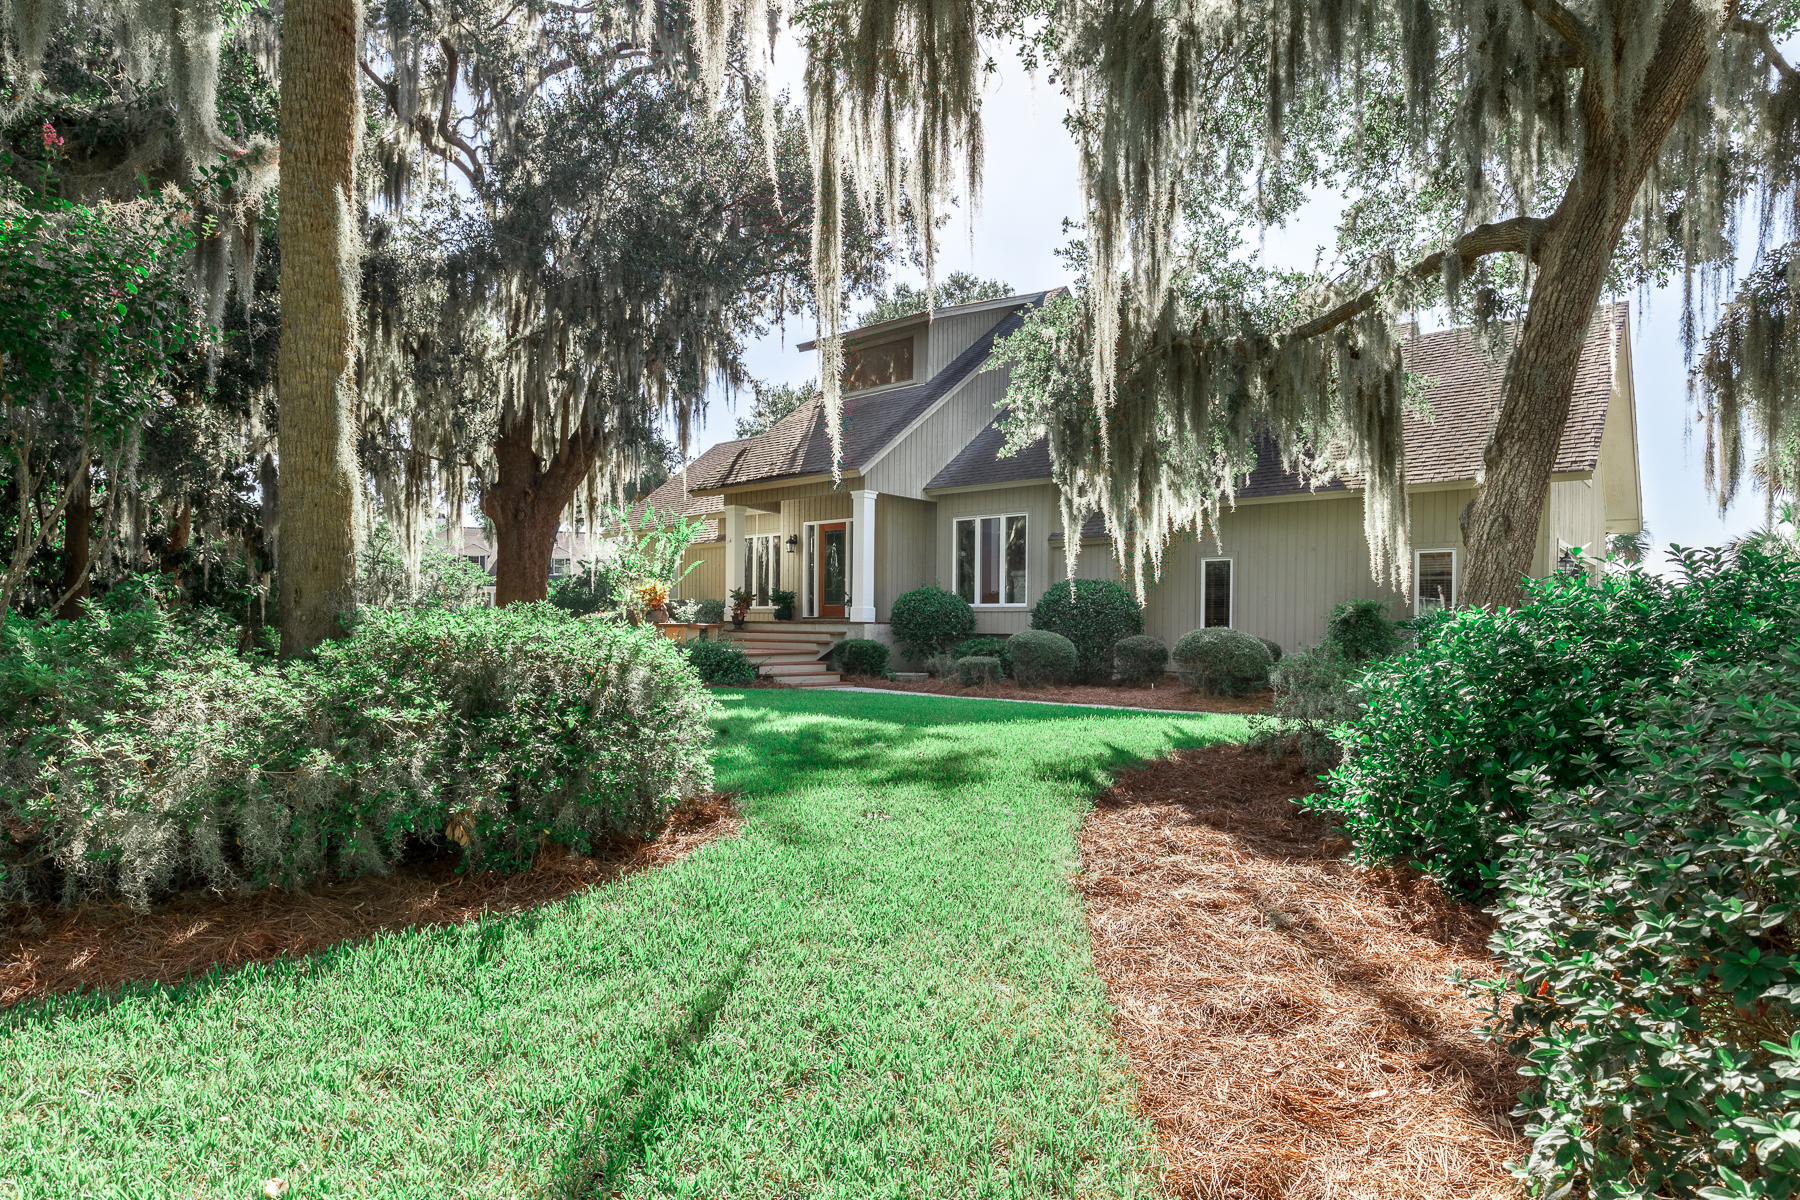 Single Family Home for Sale at 6 Wylly Island Savannah, Georgia, 31406 United States